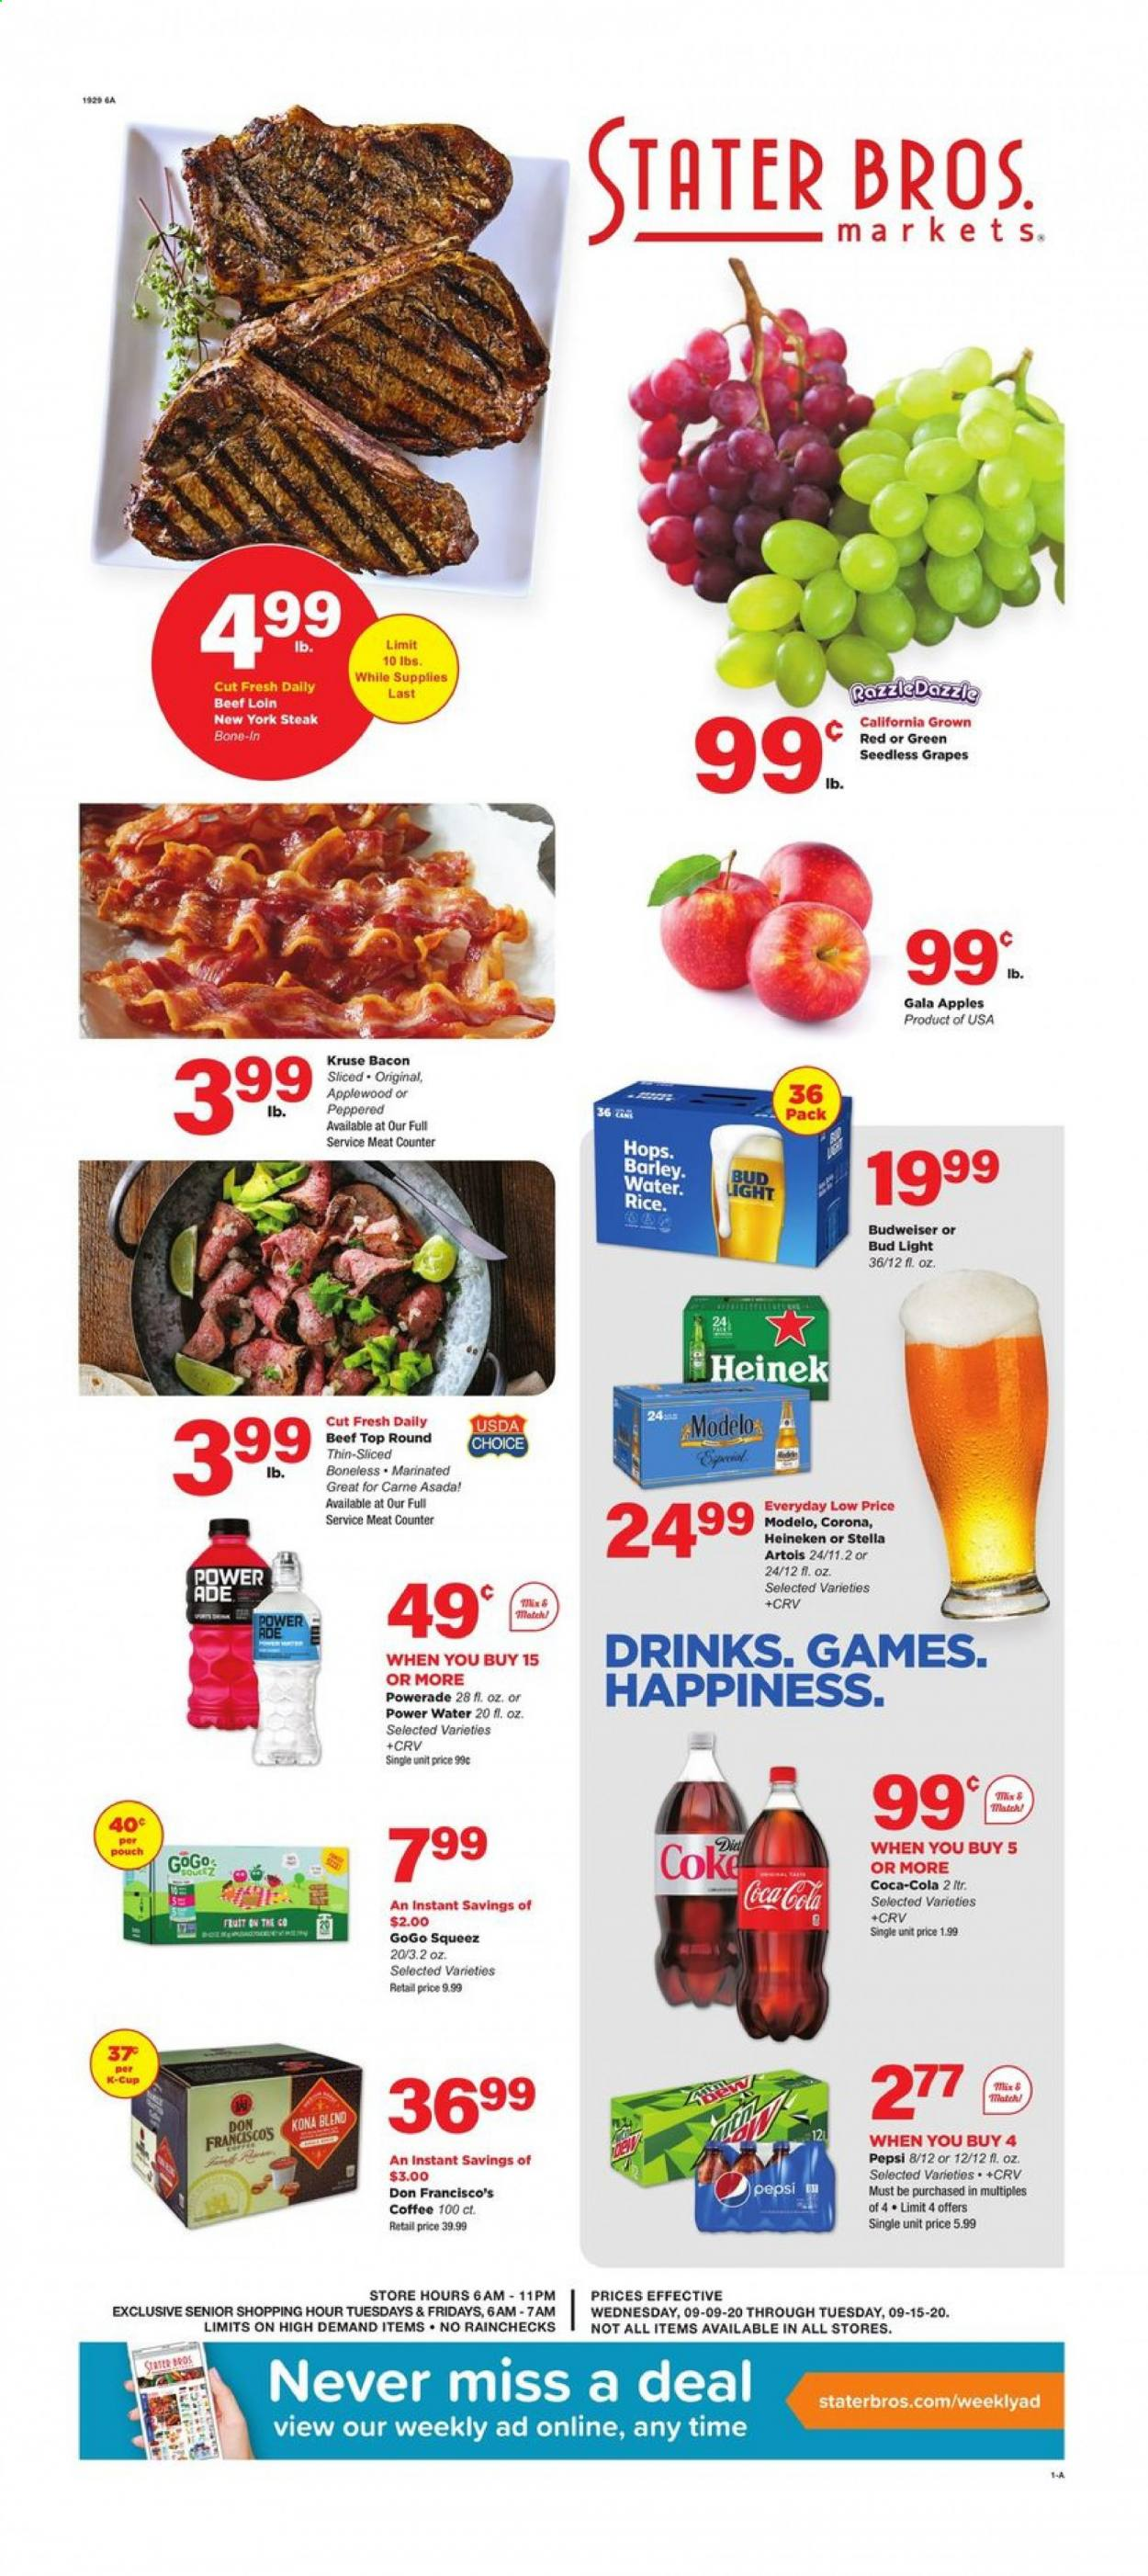 Stater Bros. Flyer - 09.09.2020 - 09.15.2020 - Sales products - bacon, barley, beef meat, Budweiser, Coca-Cola, coffee, gala apples, grapes, rice, seedless grapes, Stella Artois, powerade, Pepsi, steak, Game, Bud Light, Fruit, corona, Heineken, meat. Page 1.